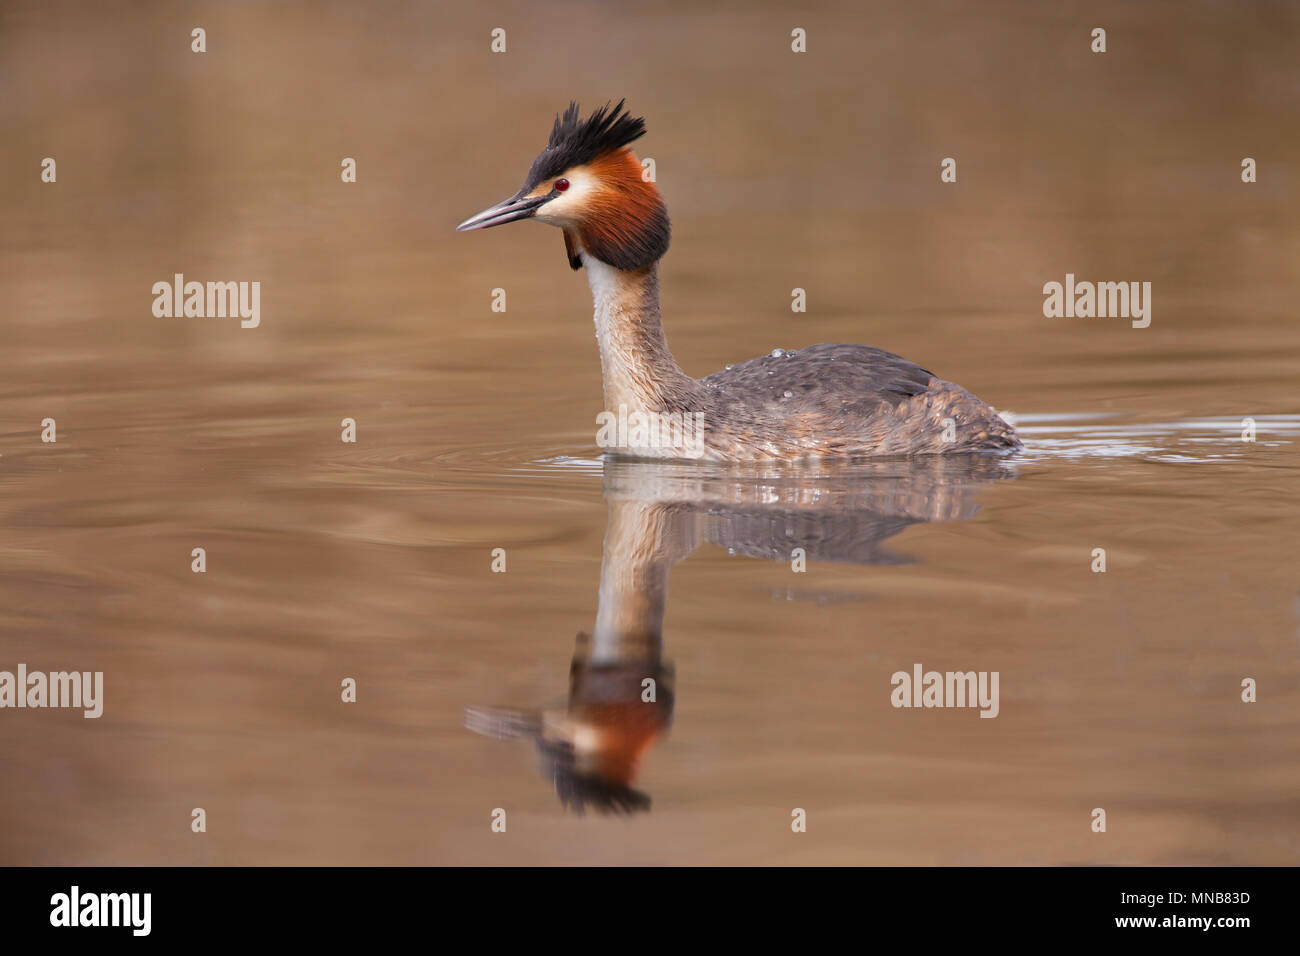 Great Crested Gebe swimming - Stock Image